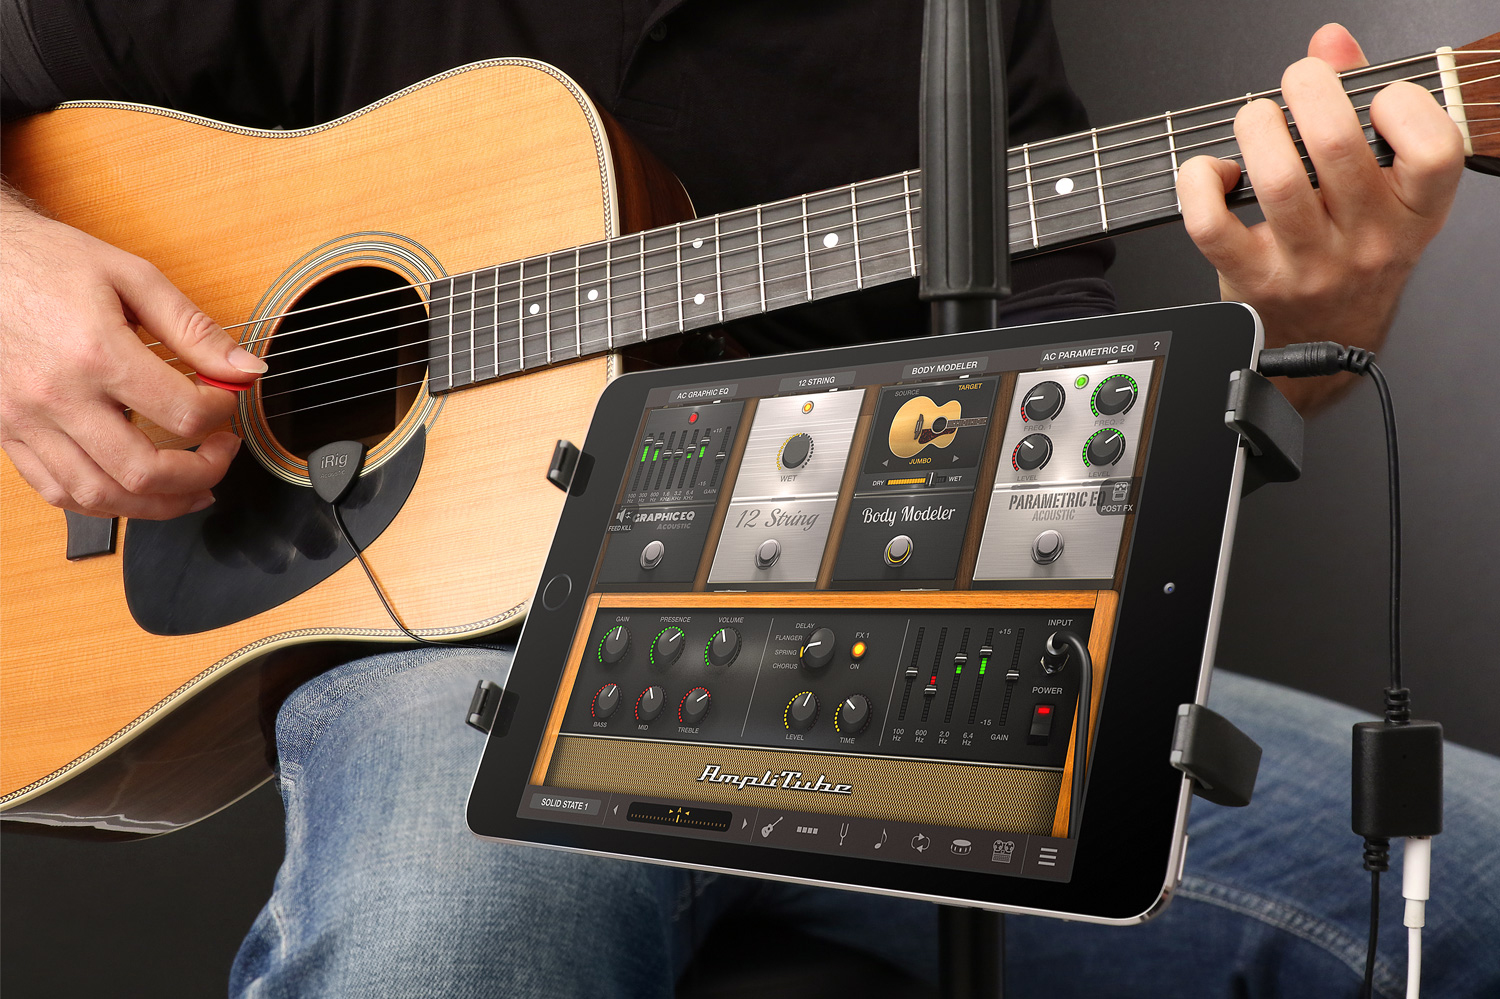 Sign up now to win our iRig Acoustic and AmpliTube Acoustic giveaway